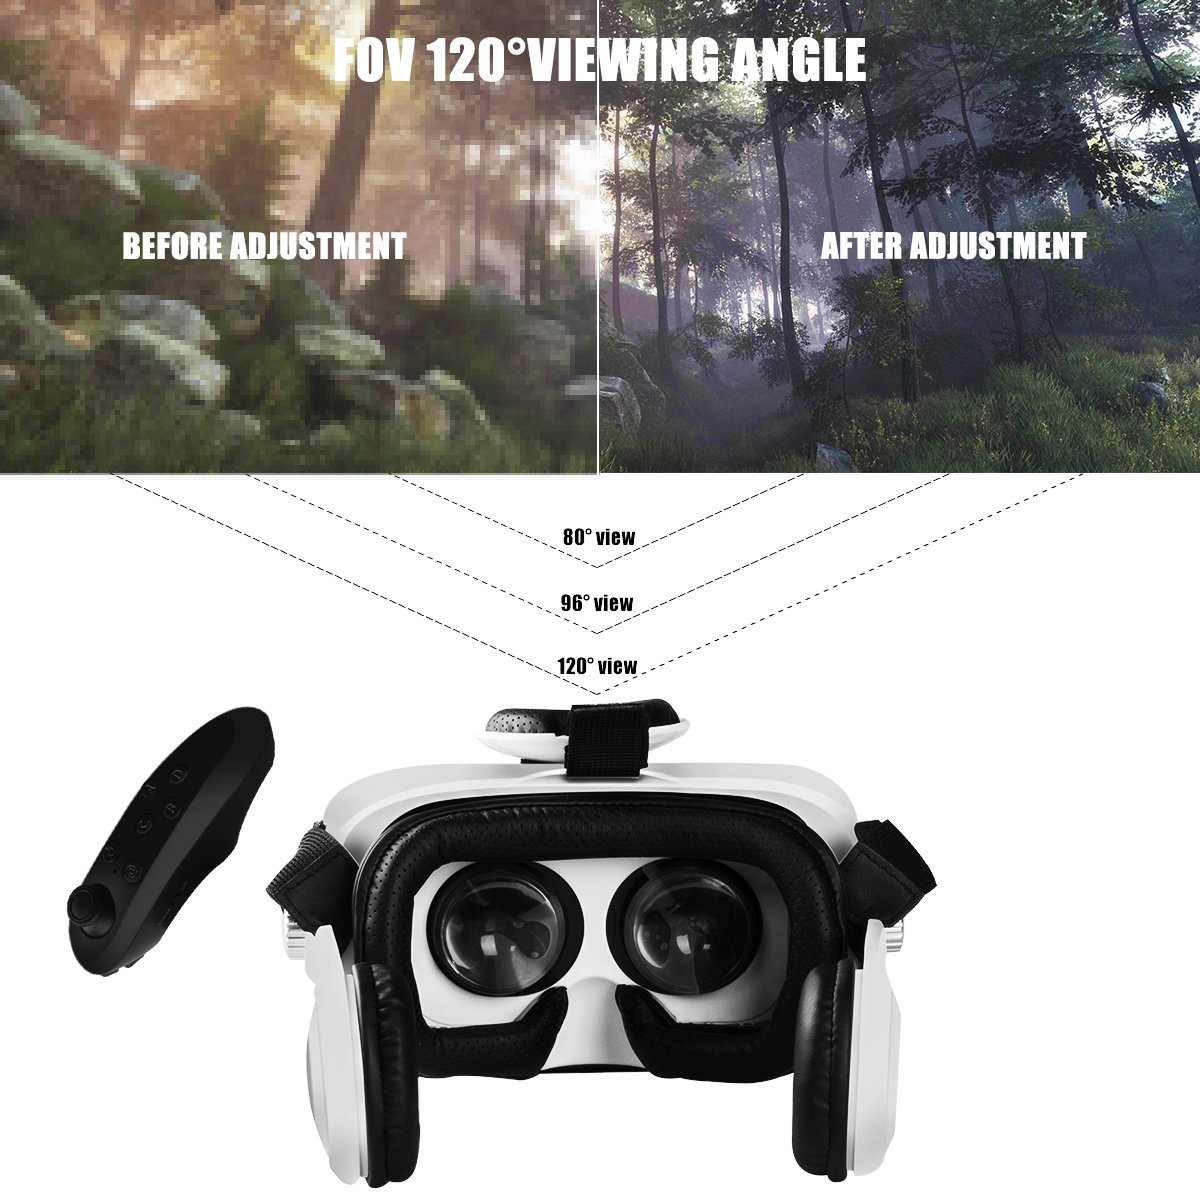 3D VR Glasses, YESSHOW VR Goggles Virtual Reality Headset Box for 3D Movies and VR Games with Remote Control Compatible with iPhone X /8/8 Plus 7/7 Plus/6S/ 6 Samsung S8/S7 and Other 4.0''-6.0'' phones by YESSHOW (Image #8)